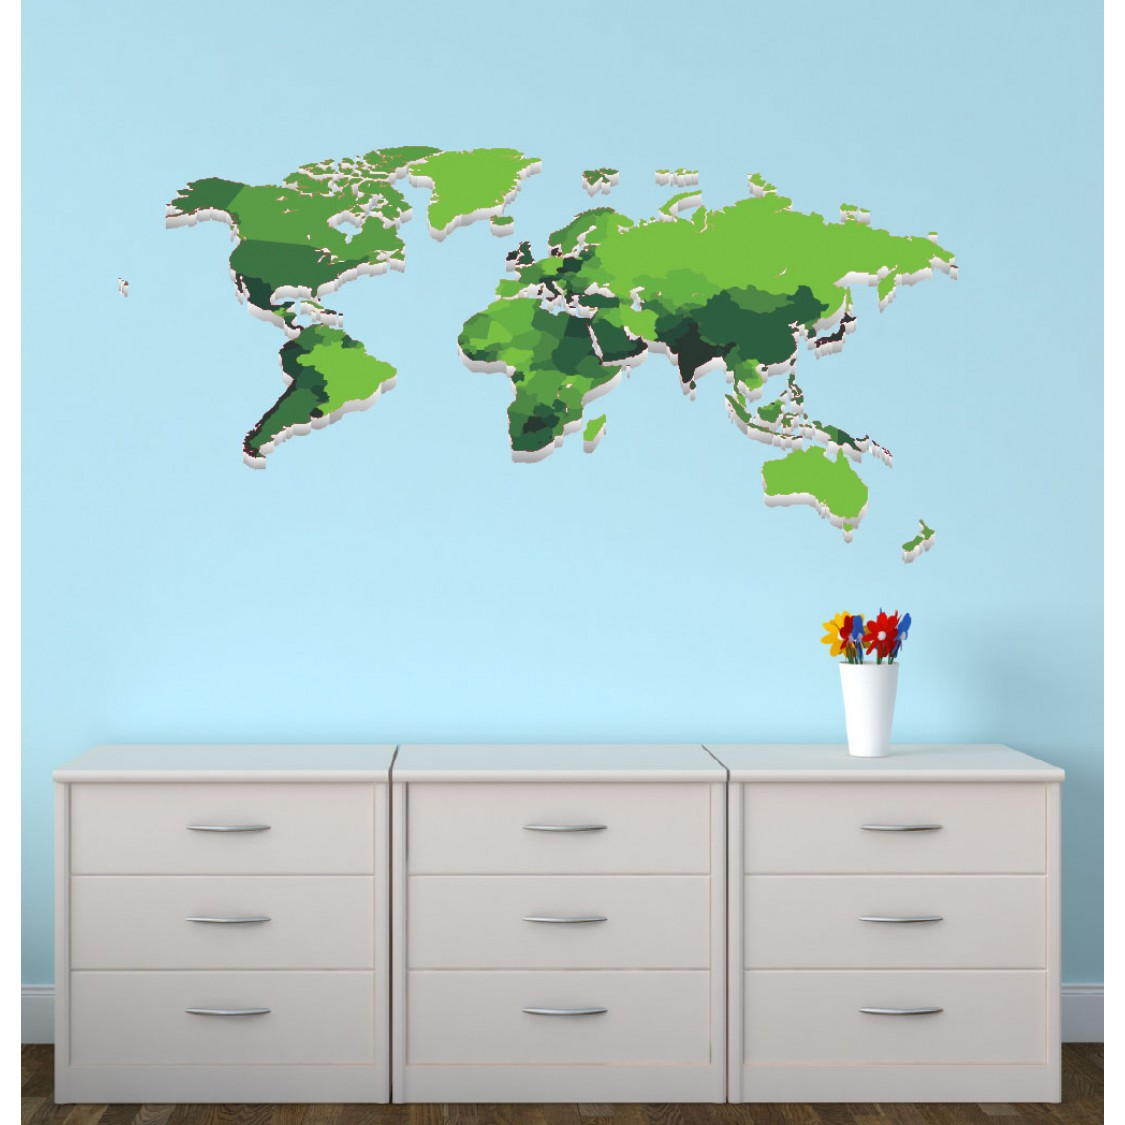 Large Wall Decal With World Map Wall Decor For Kids